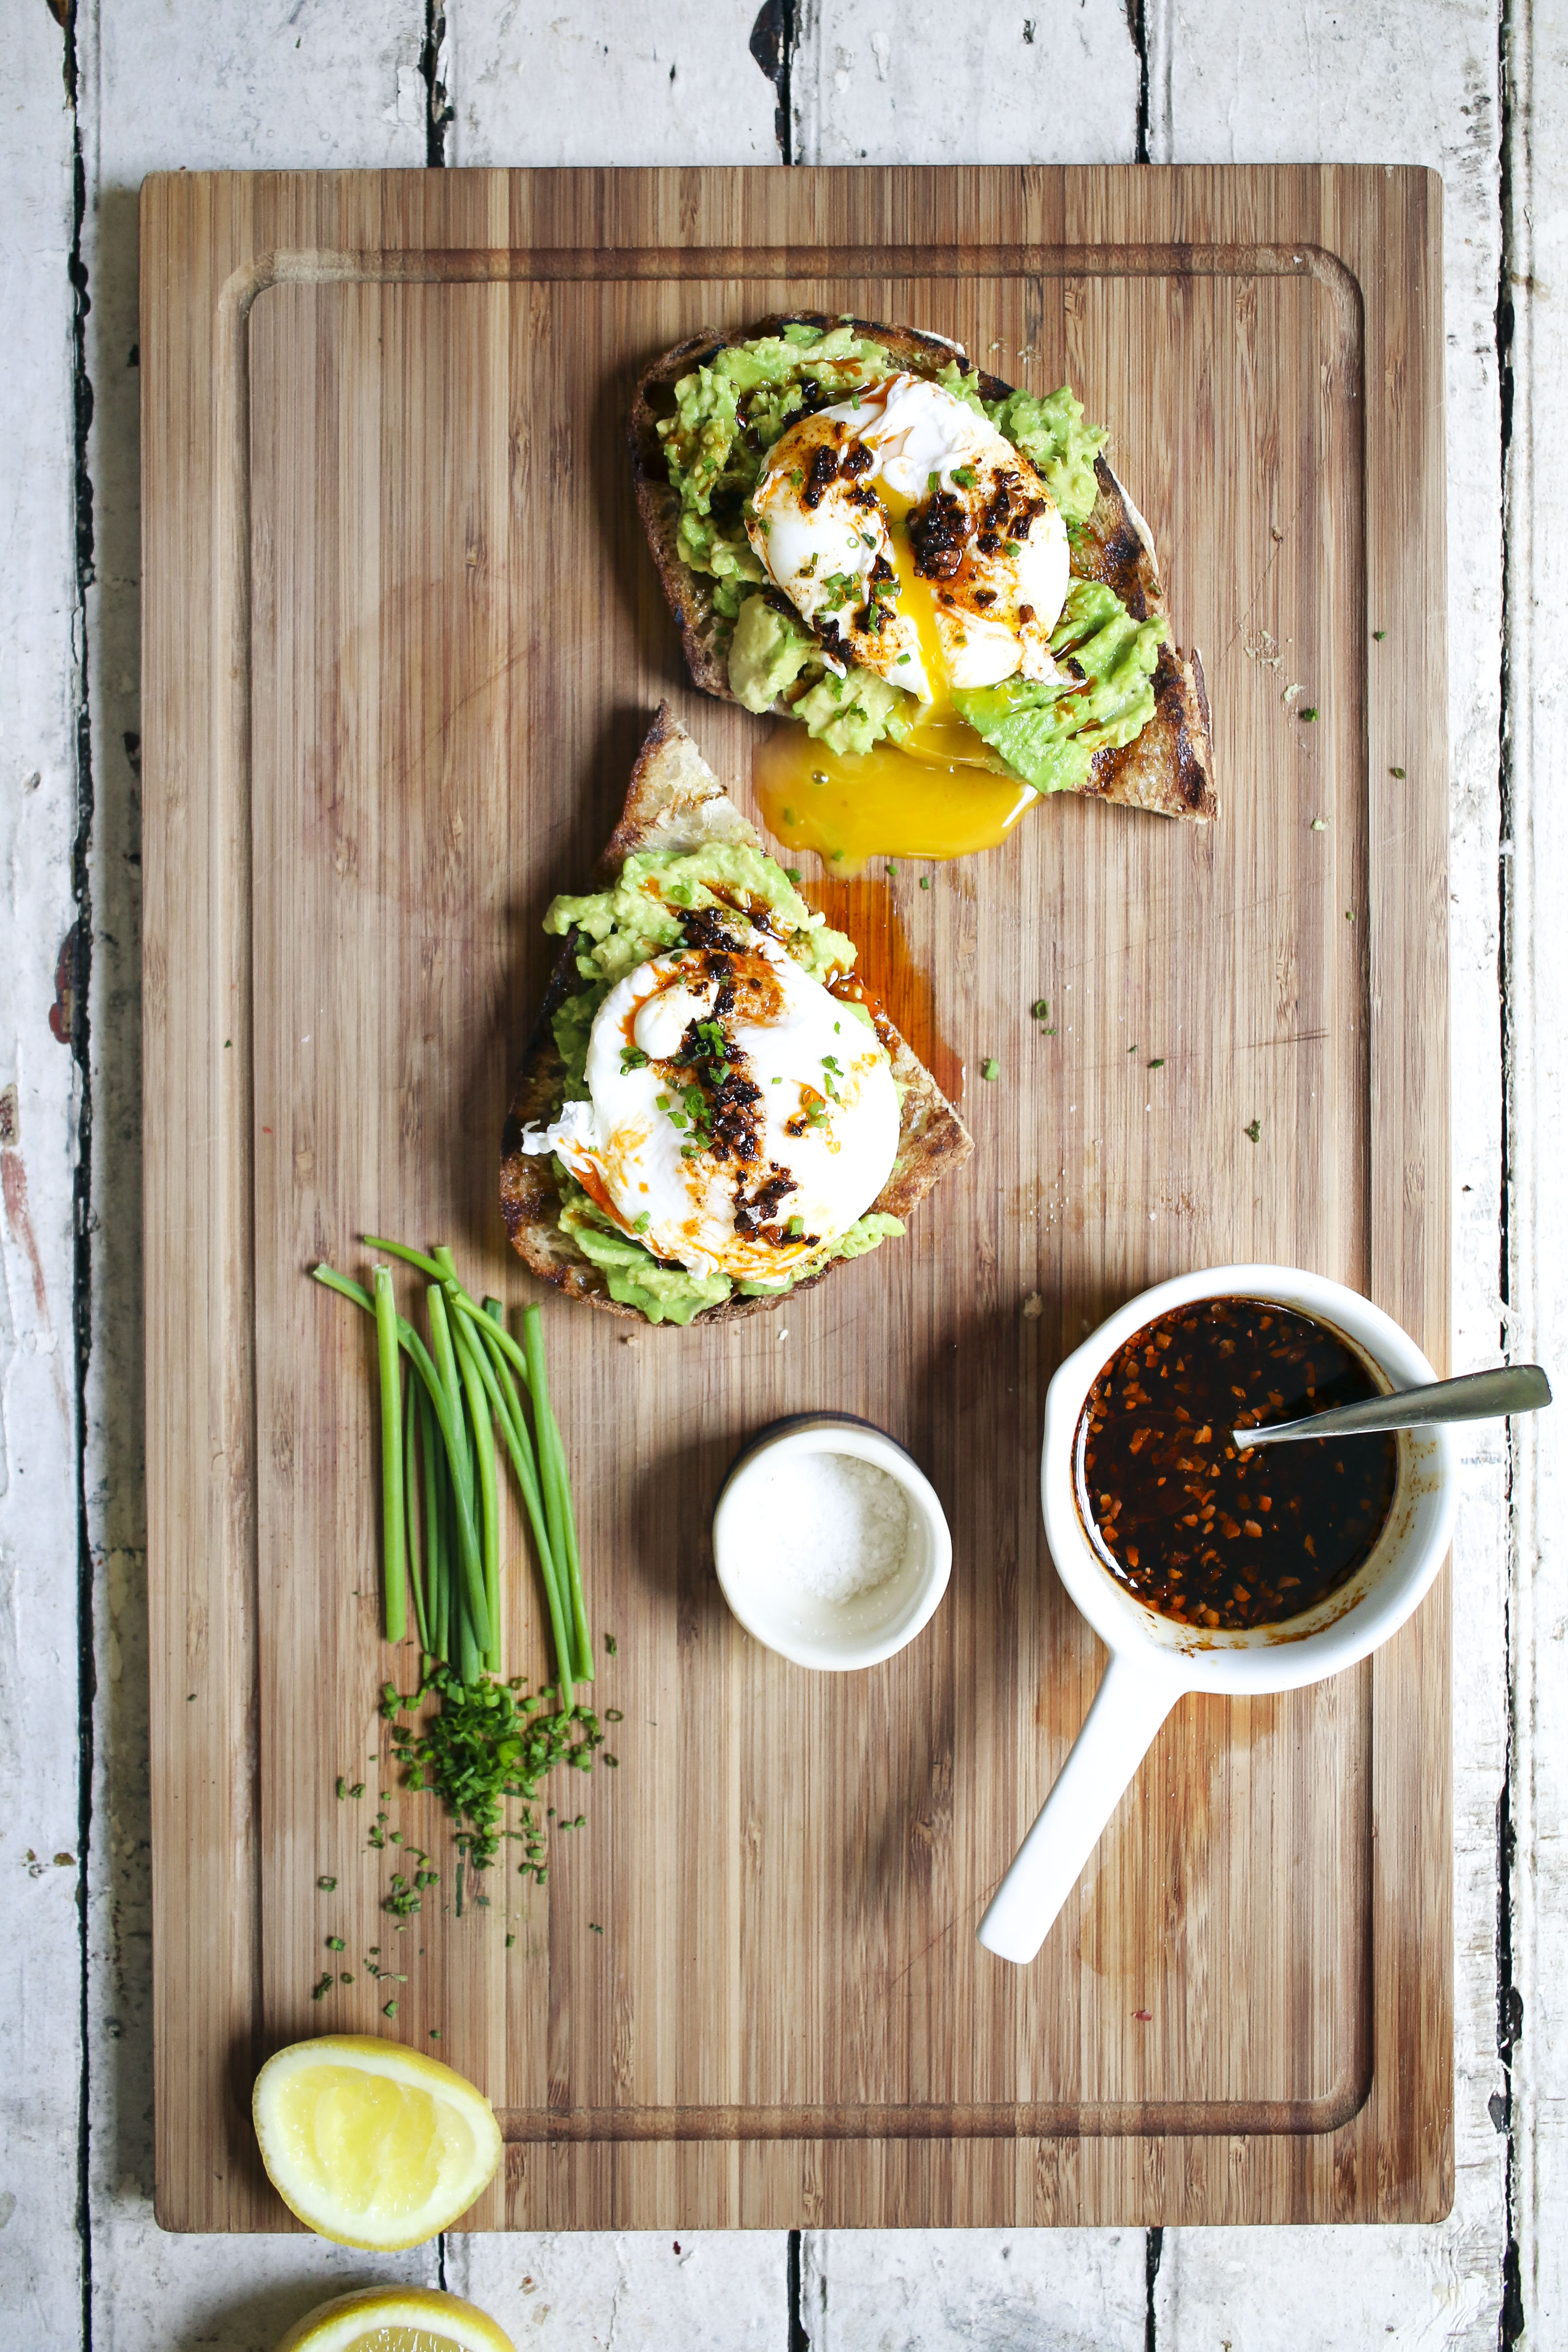 Avocado & Egg Toast with Aleppo Pepper Oil | I Will Not Eat Oysters